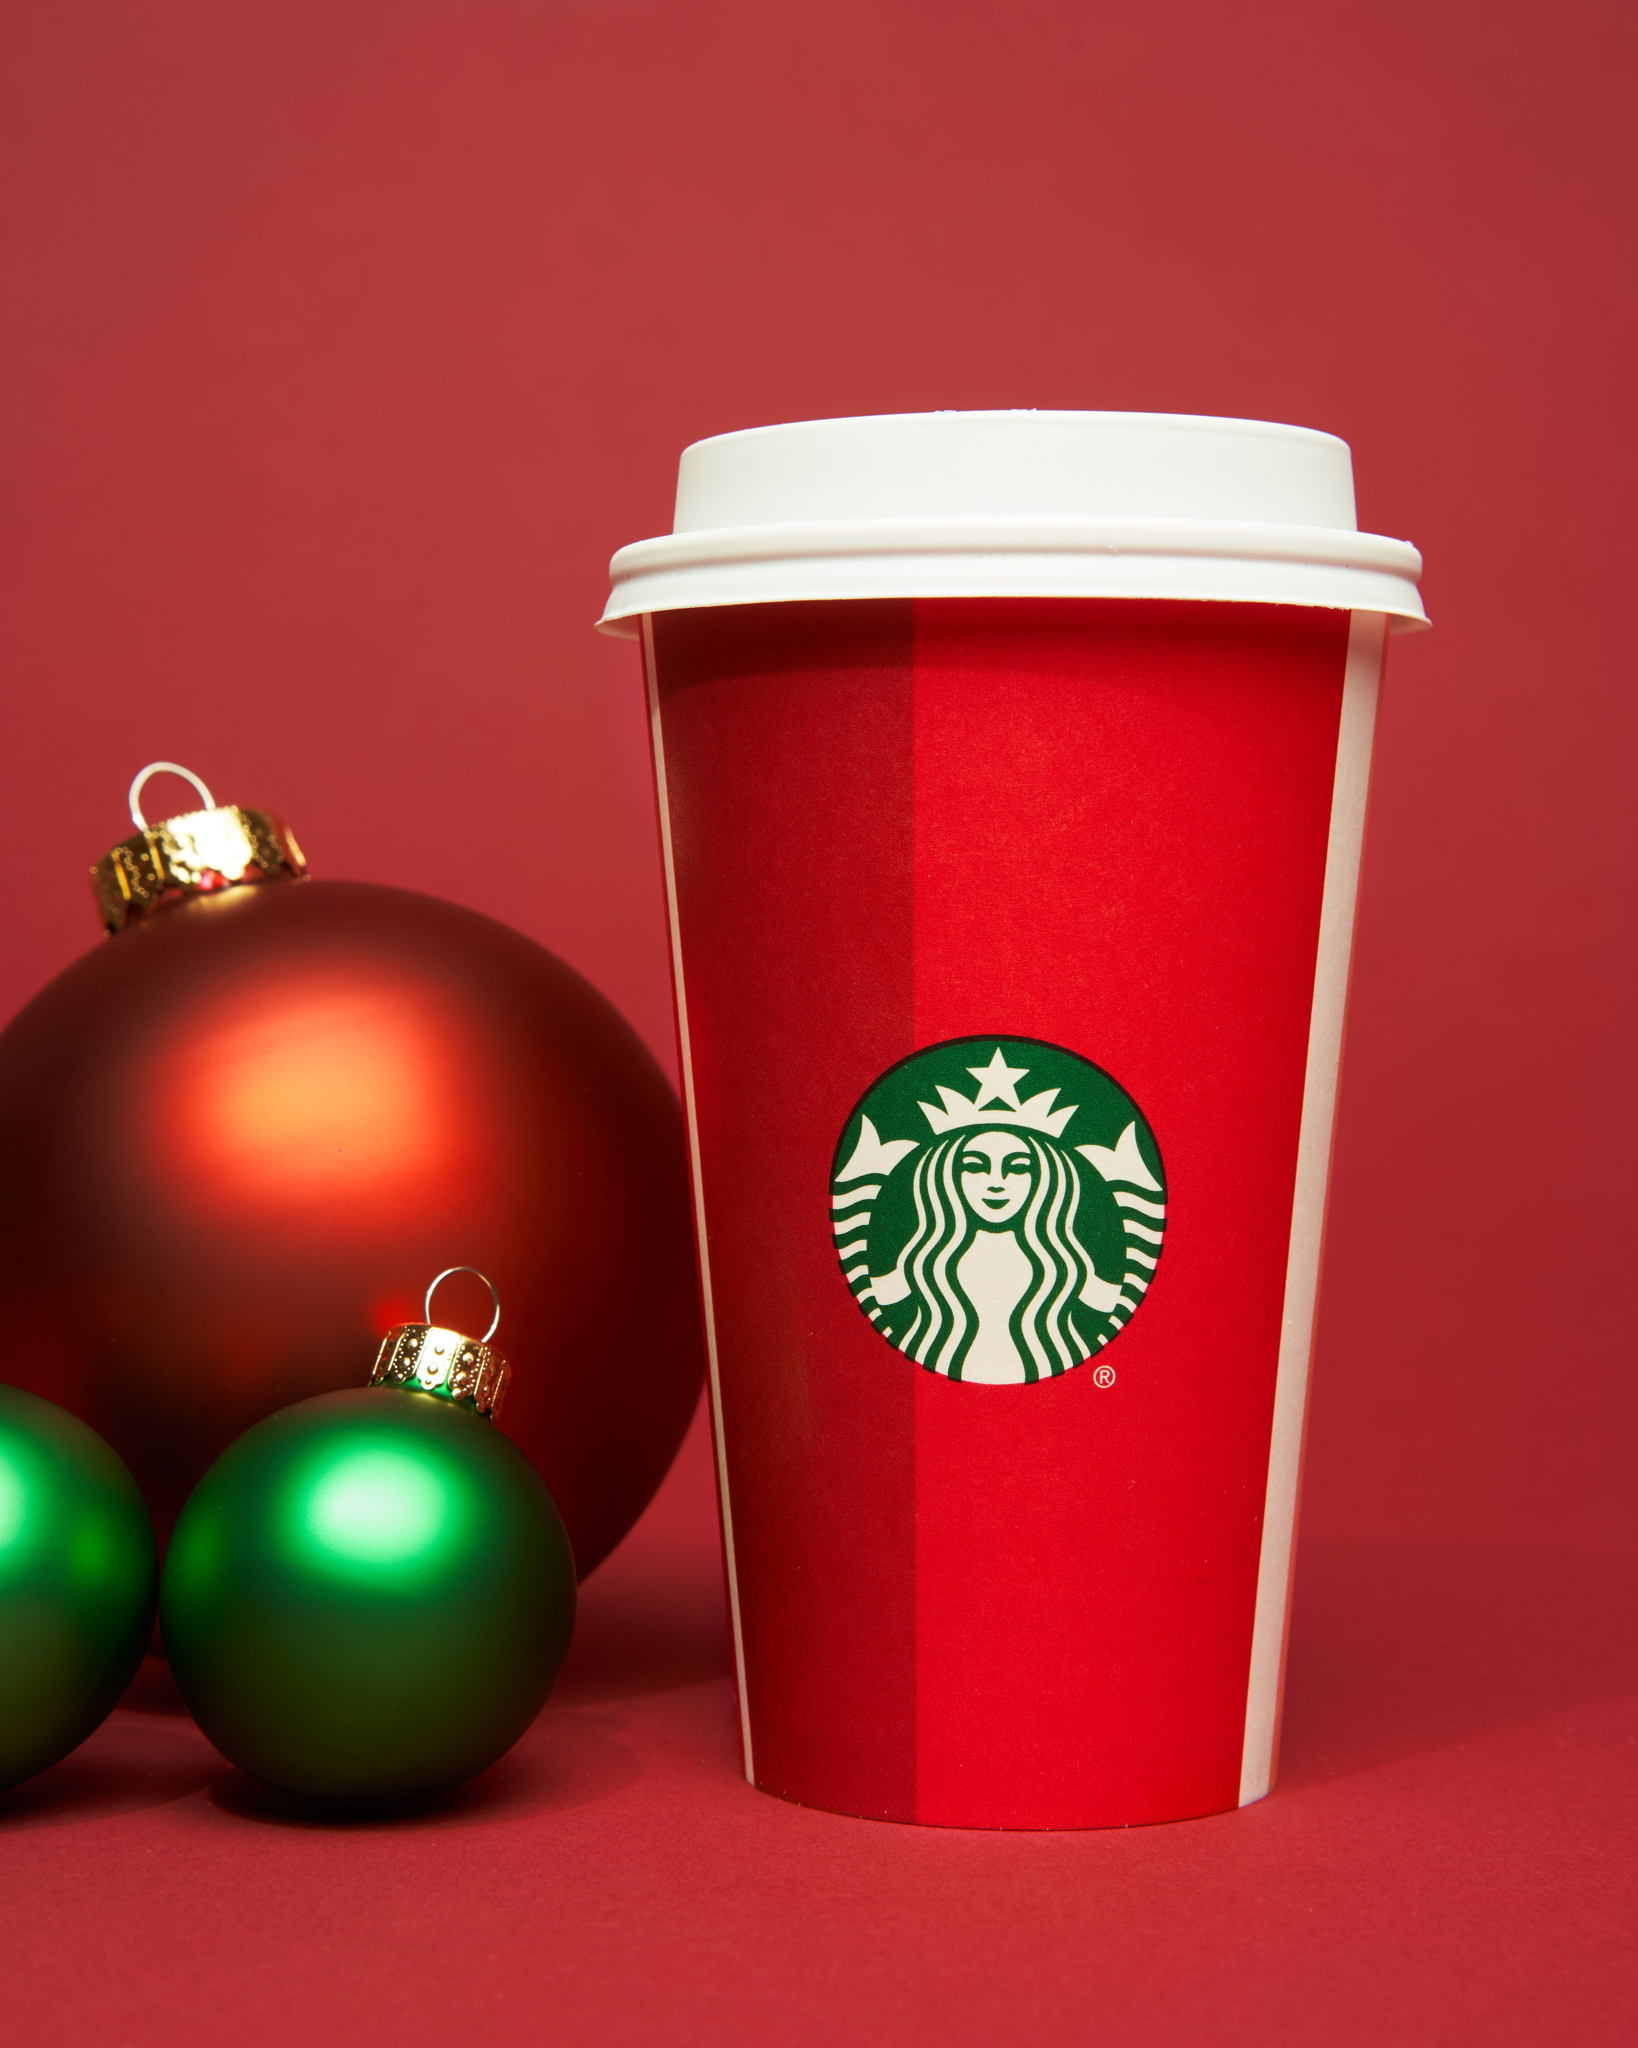 The_Dieline_Starbucks_Holiday-JStrutz-103118-0545_1.jpg